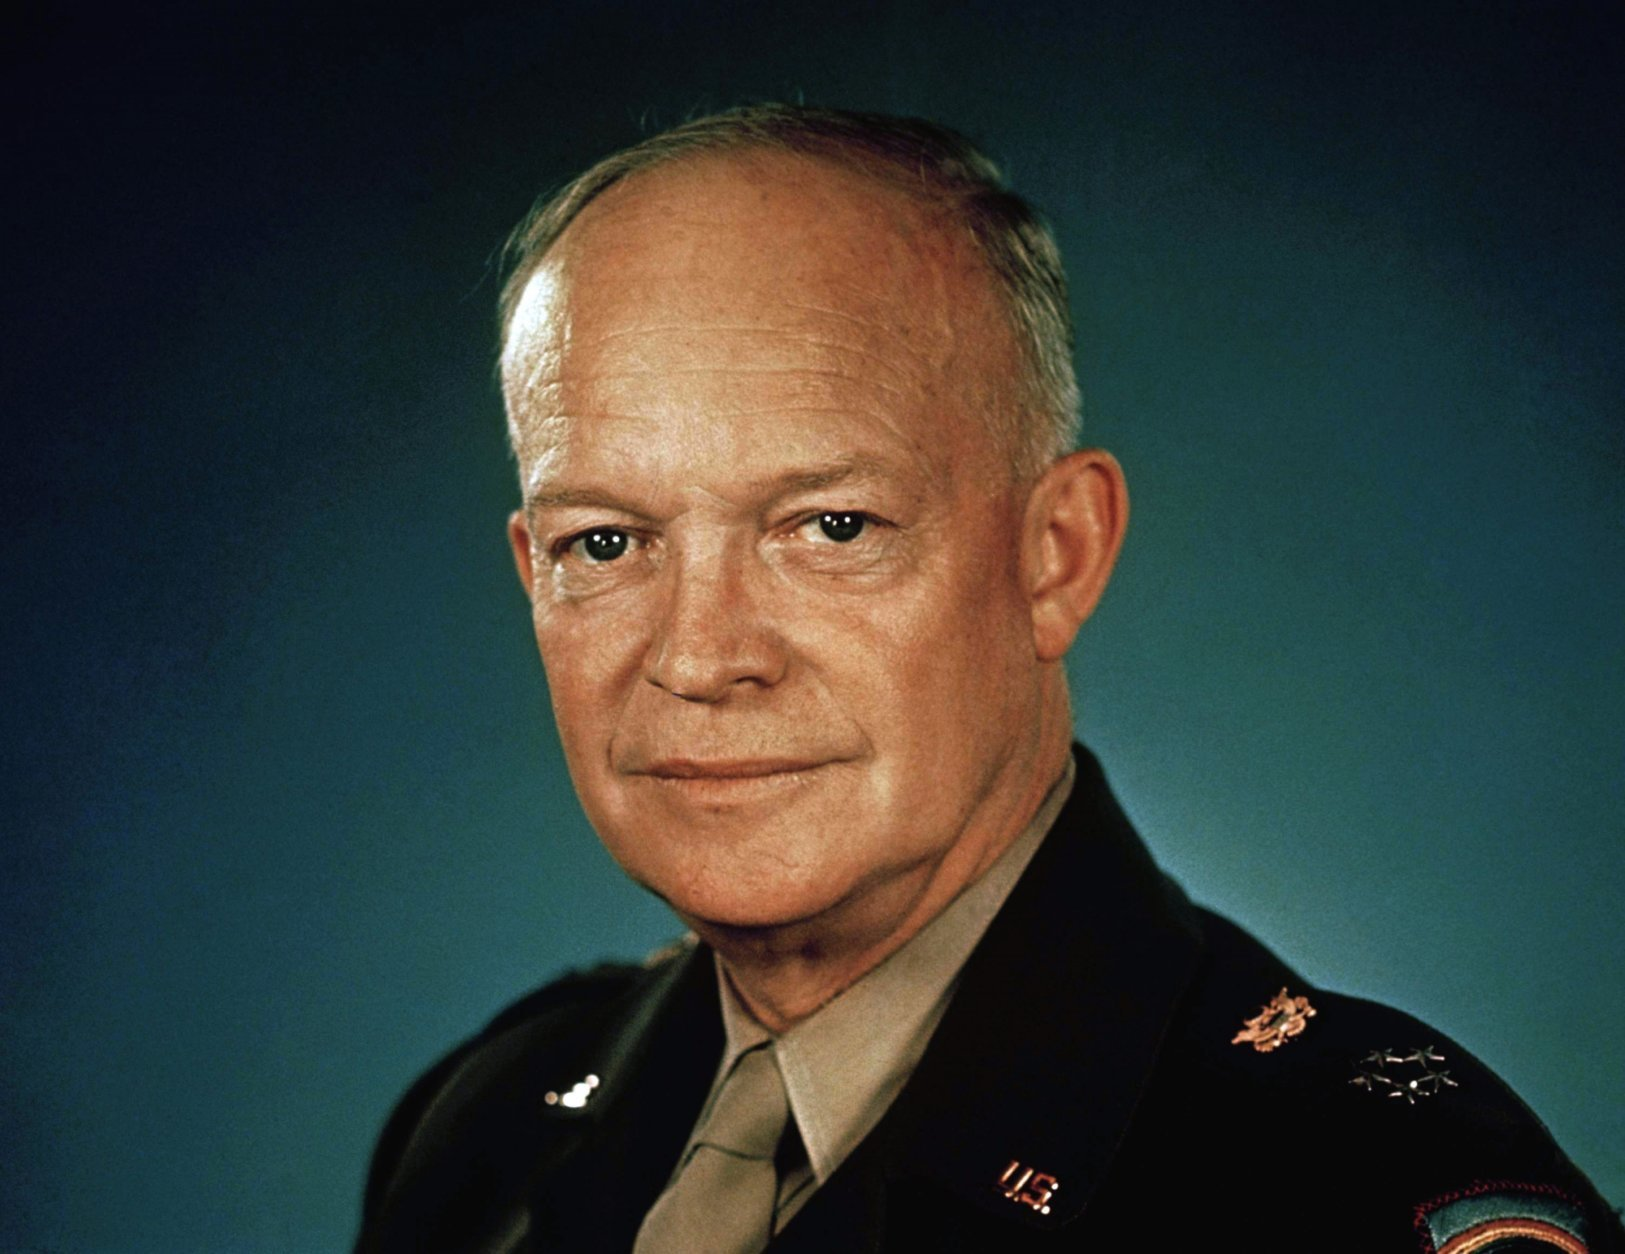 """File-This 1945 file photo shows General Dwight D. Eisenhower in uniform. The plain green telephone Eisenhower used at his summer residence in Rhode Island has sold at auction. The Newport Daily News reports that the phone with no numbers or dial was sold earlier this month by Bruneau & Co. Auctioneers of Cranston for $1,375. The telephone was Eisenhower's personal telephone at the """"Summer White House"""" in Newport. (AP Photo/File)"""